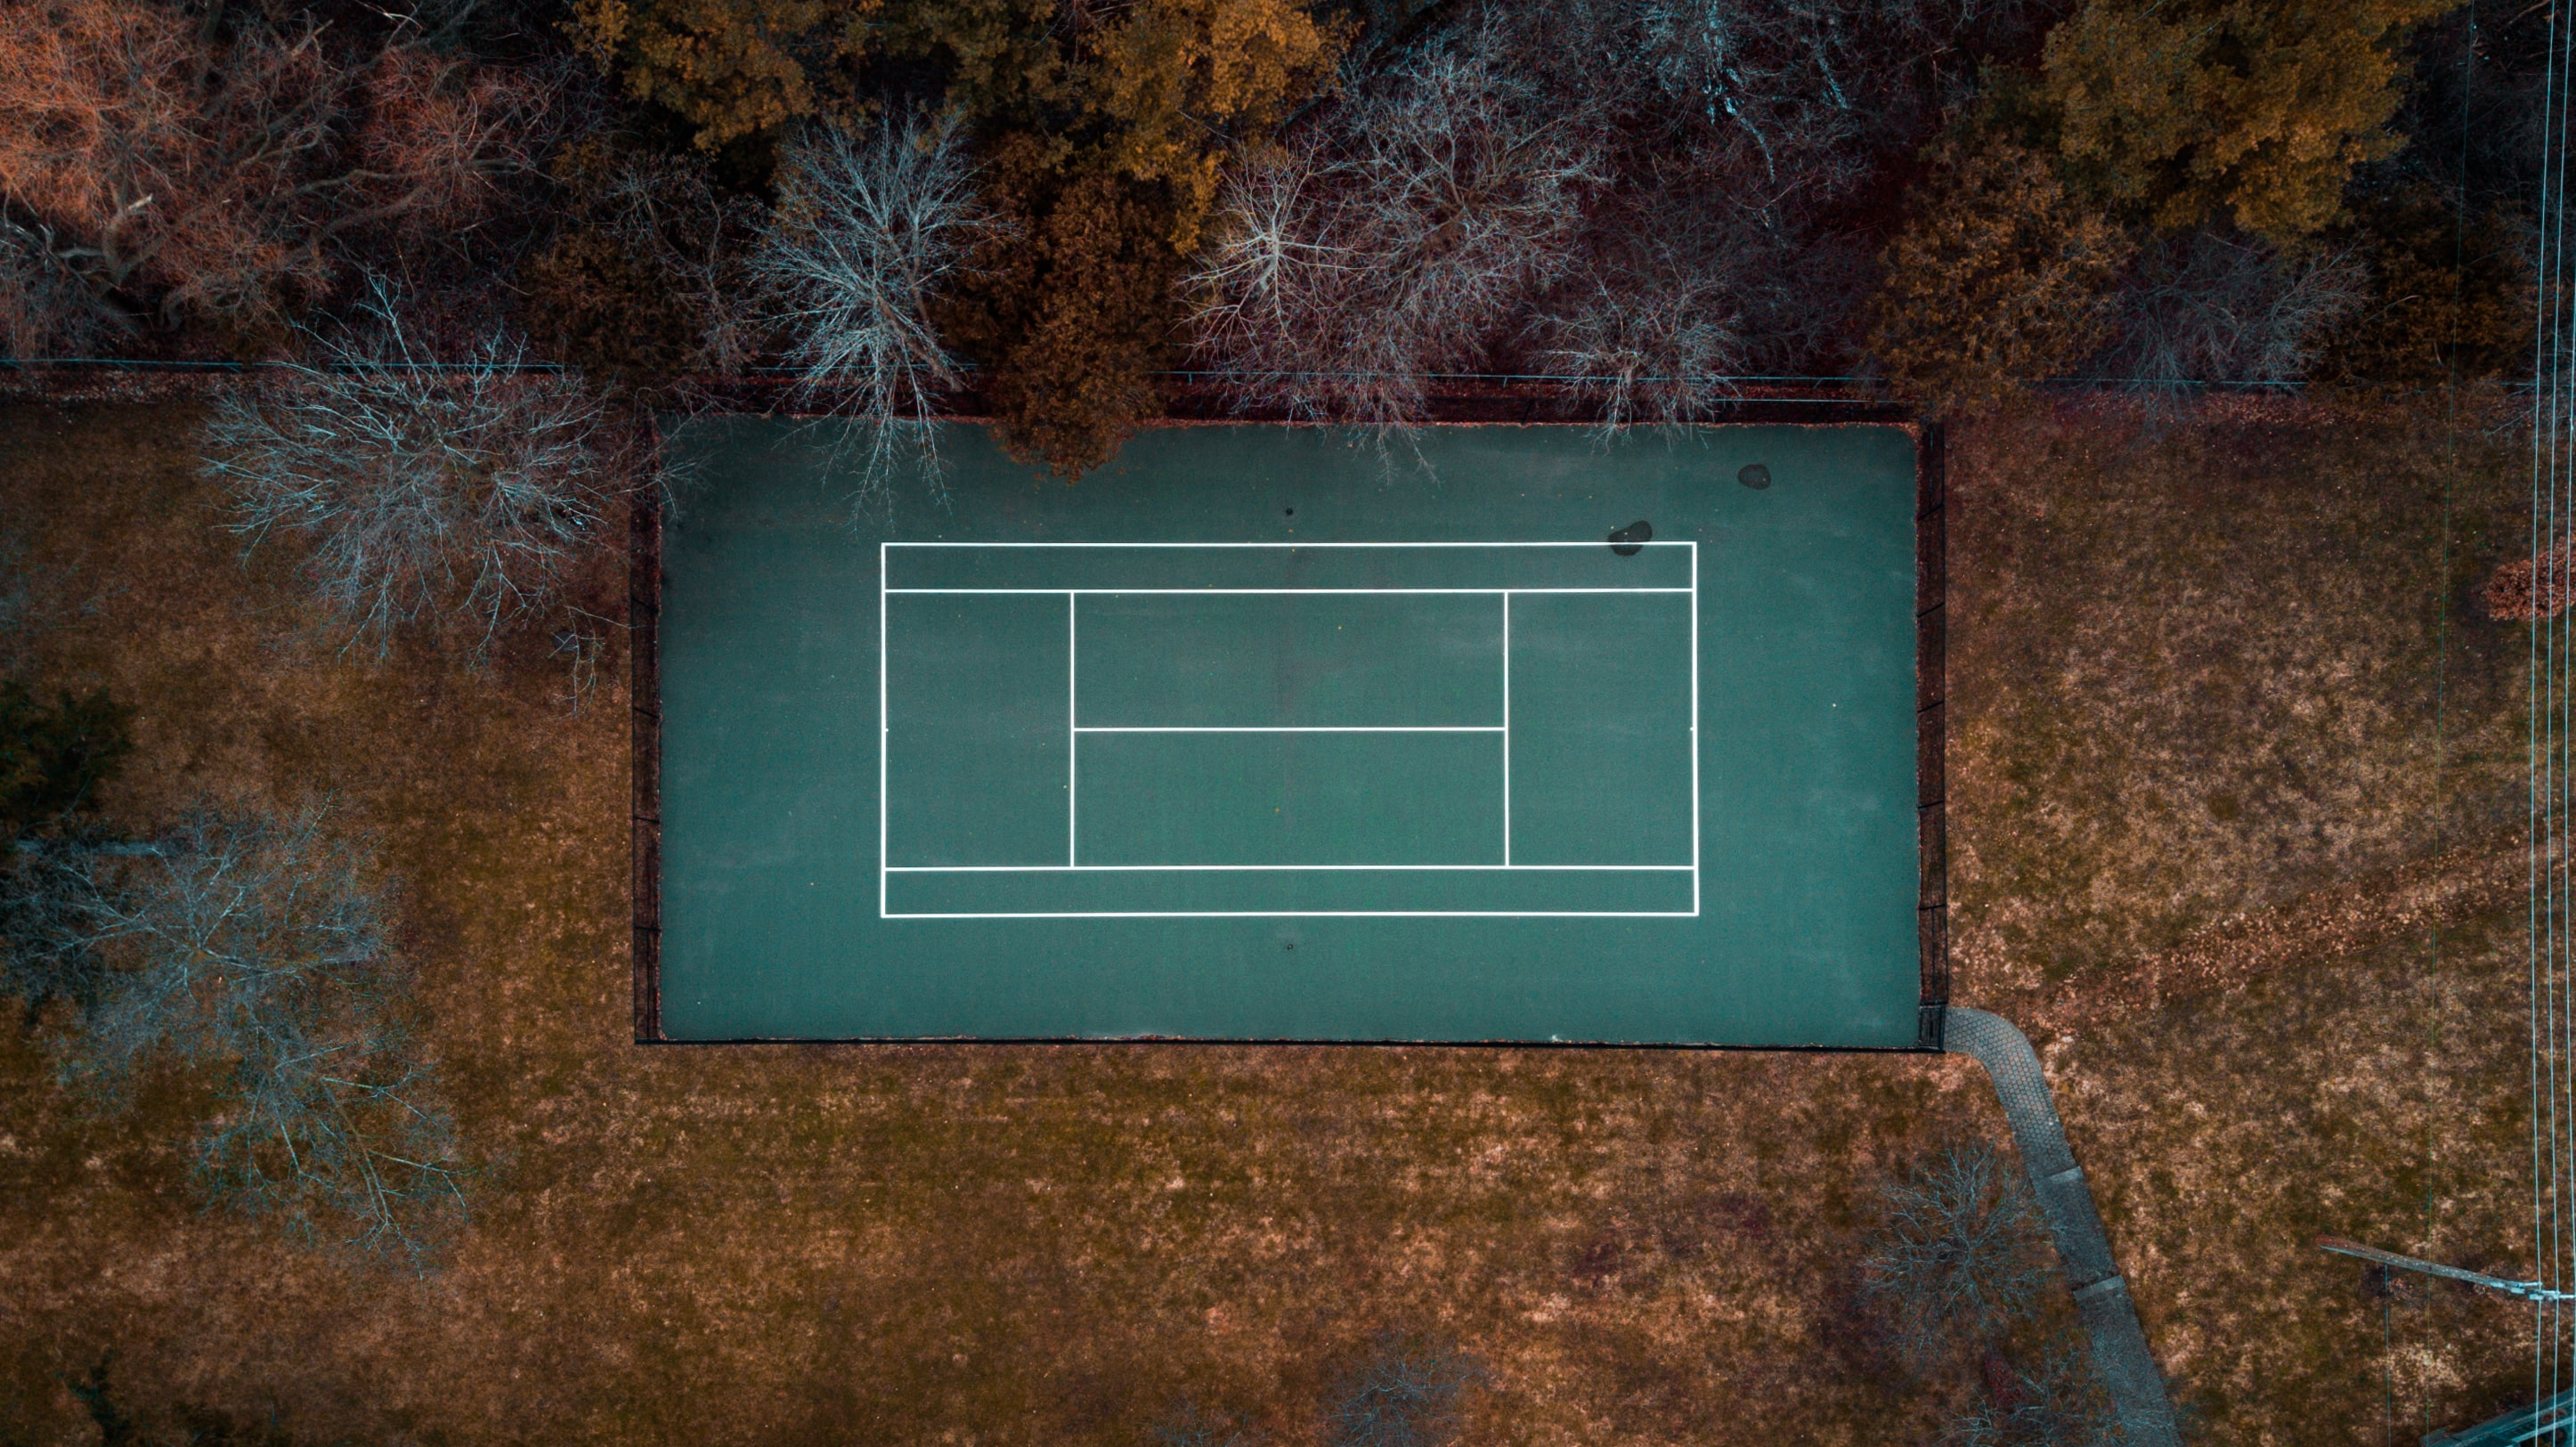 flat-lay photography of tennis court